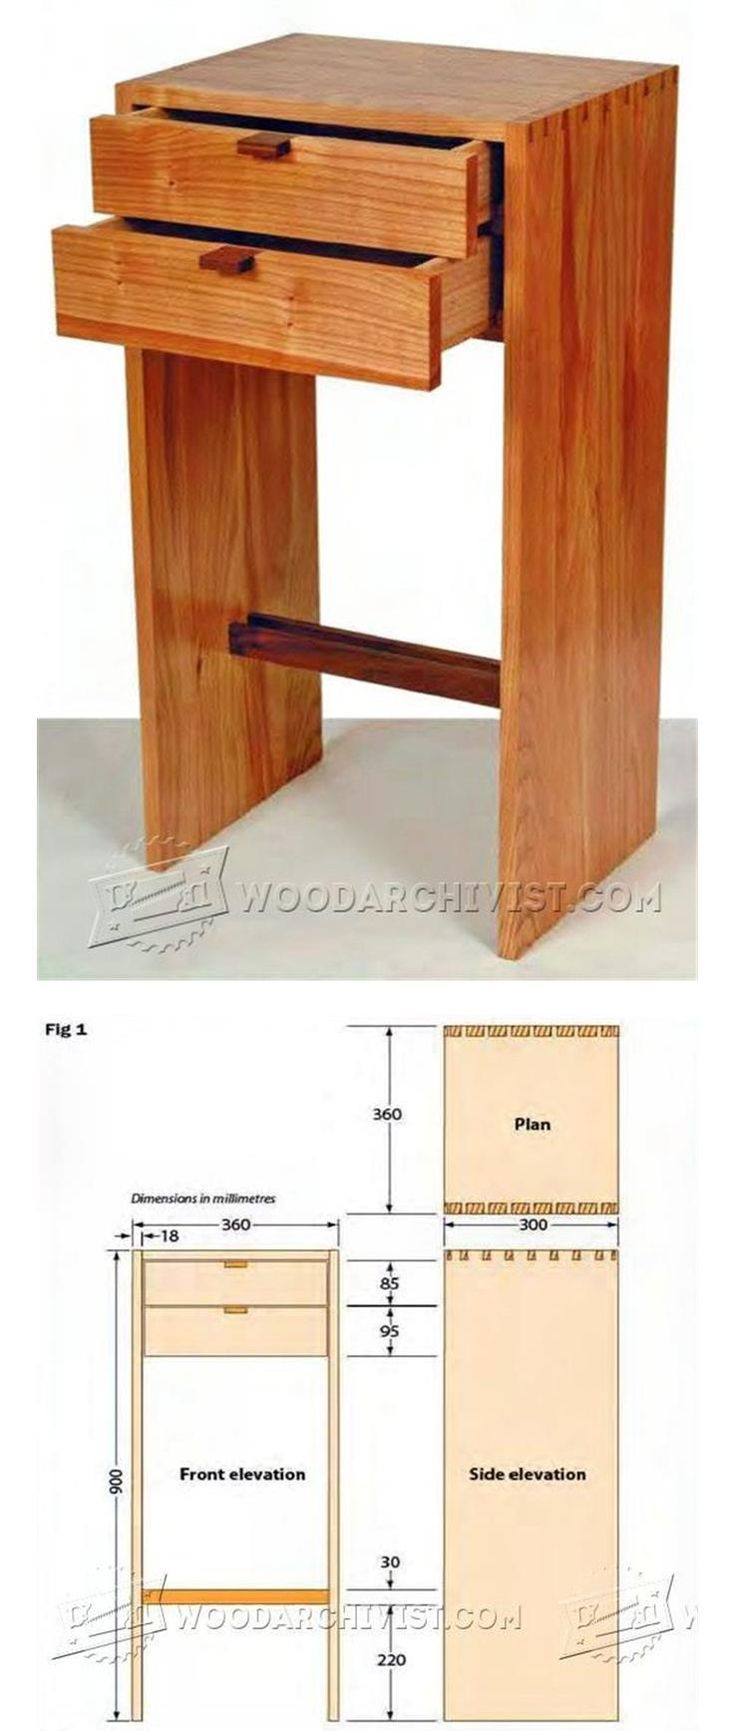 Two Drawer Unit Plan - Furniture Plans and Projects | WoodArchivist.com